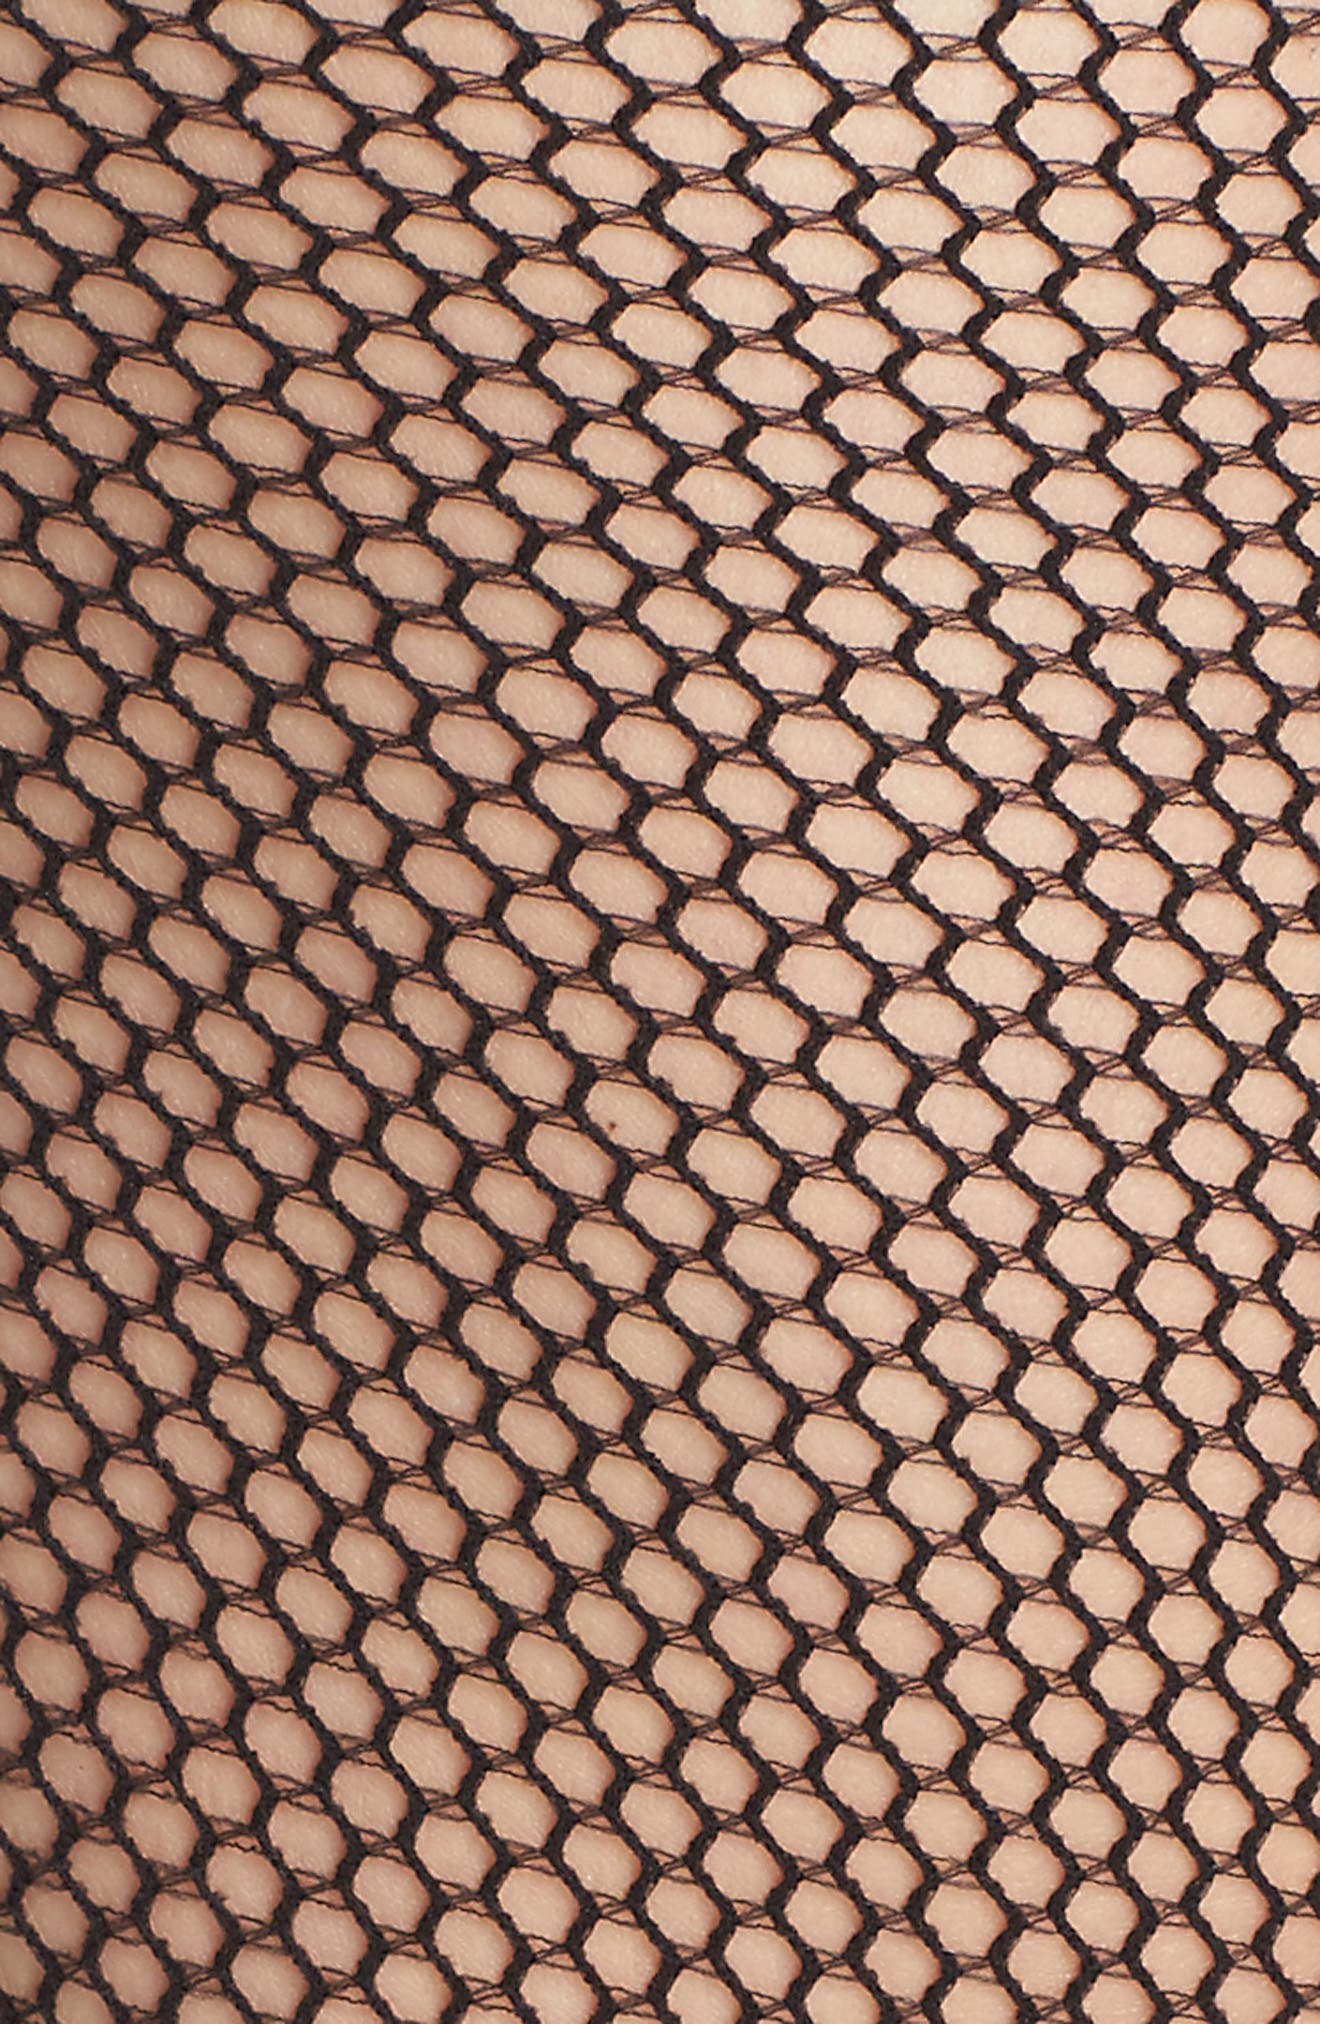 Fishnet Stay-Up Stockings,                             Alternate thumbnail 3, color,